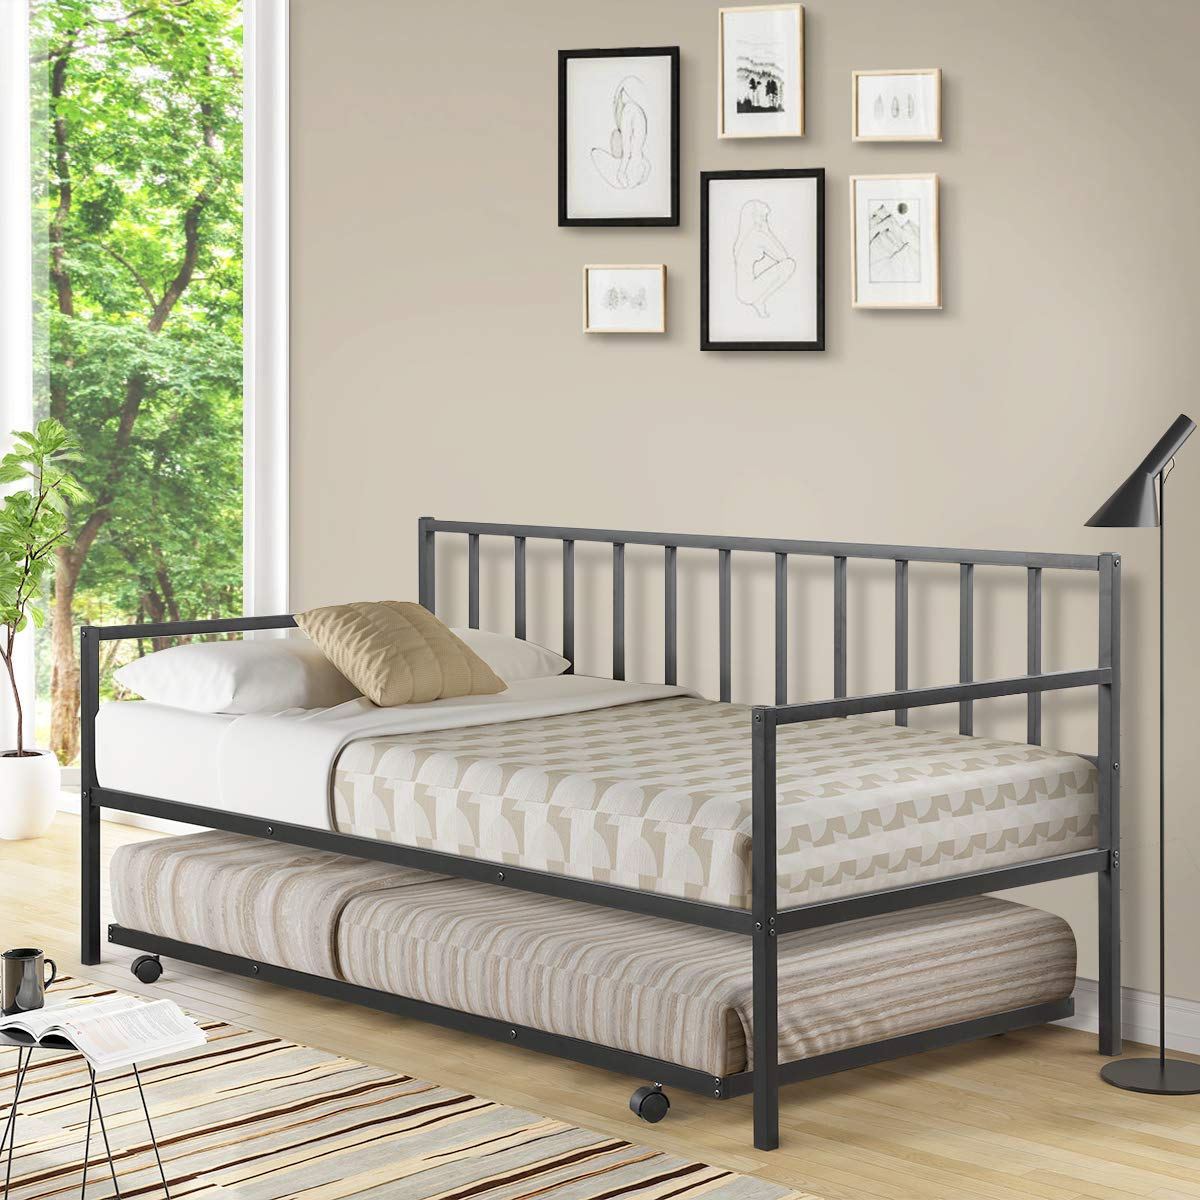 Giantex Twin Size Daybed and Trundle Frame Set, Trundle Bed with 4 Casters, Premium Metal Slat Support, Easy Assembly, Mat...